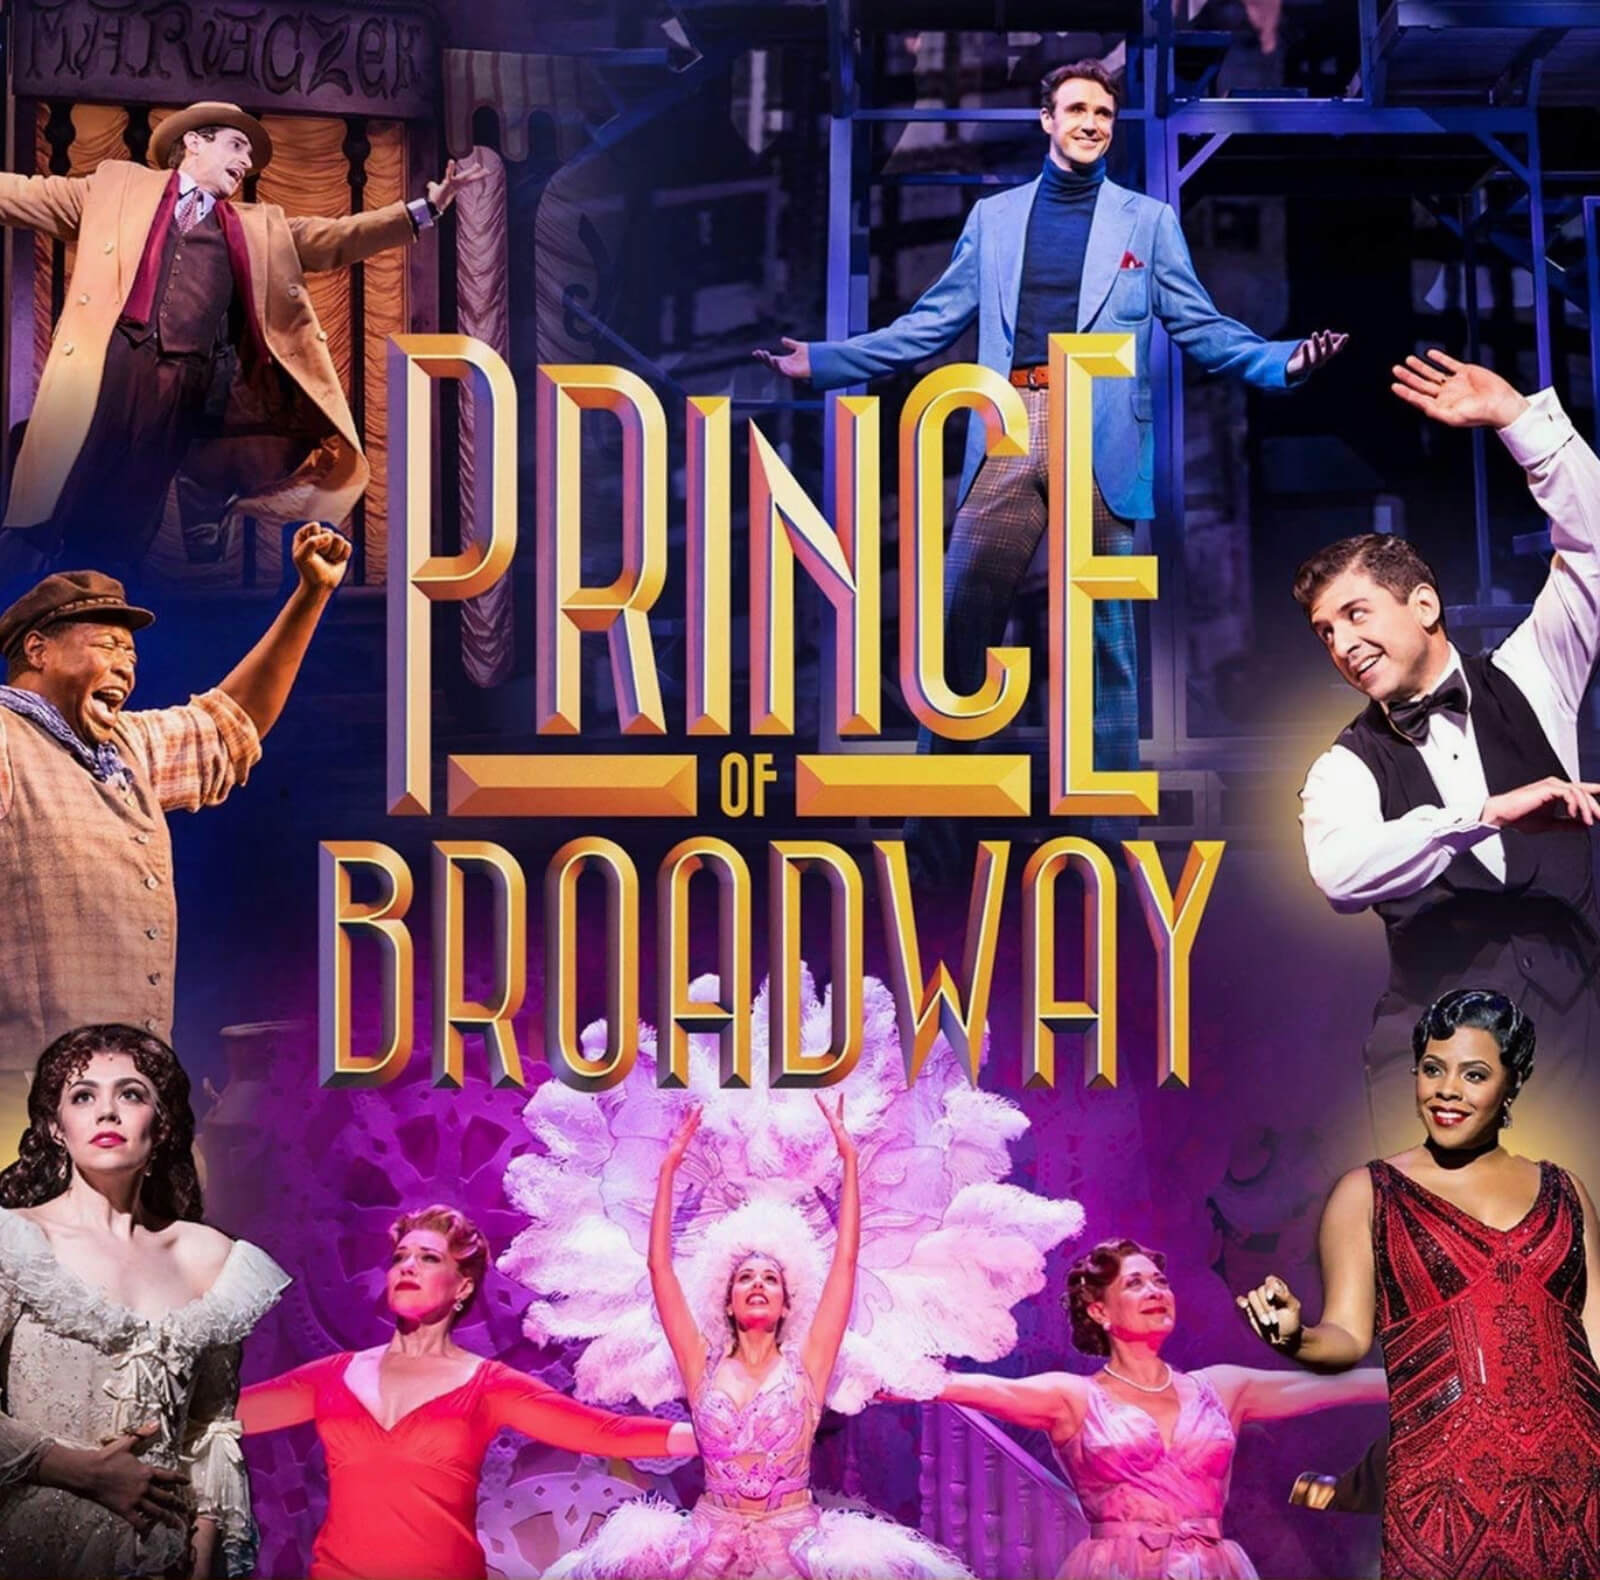 The official logo for Prince of Broadway, with all the characters in different costumes in the background, surrounding the show's title in the middle. The title is elegantly written in big, yellow, narrow fonts, with intricate shadows.